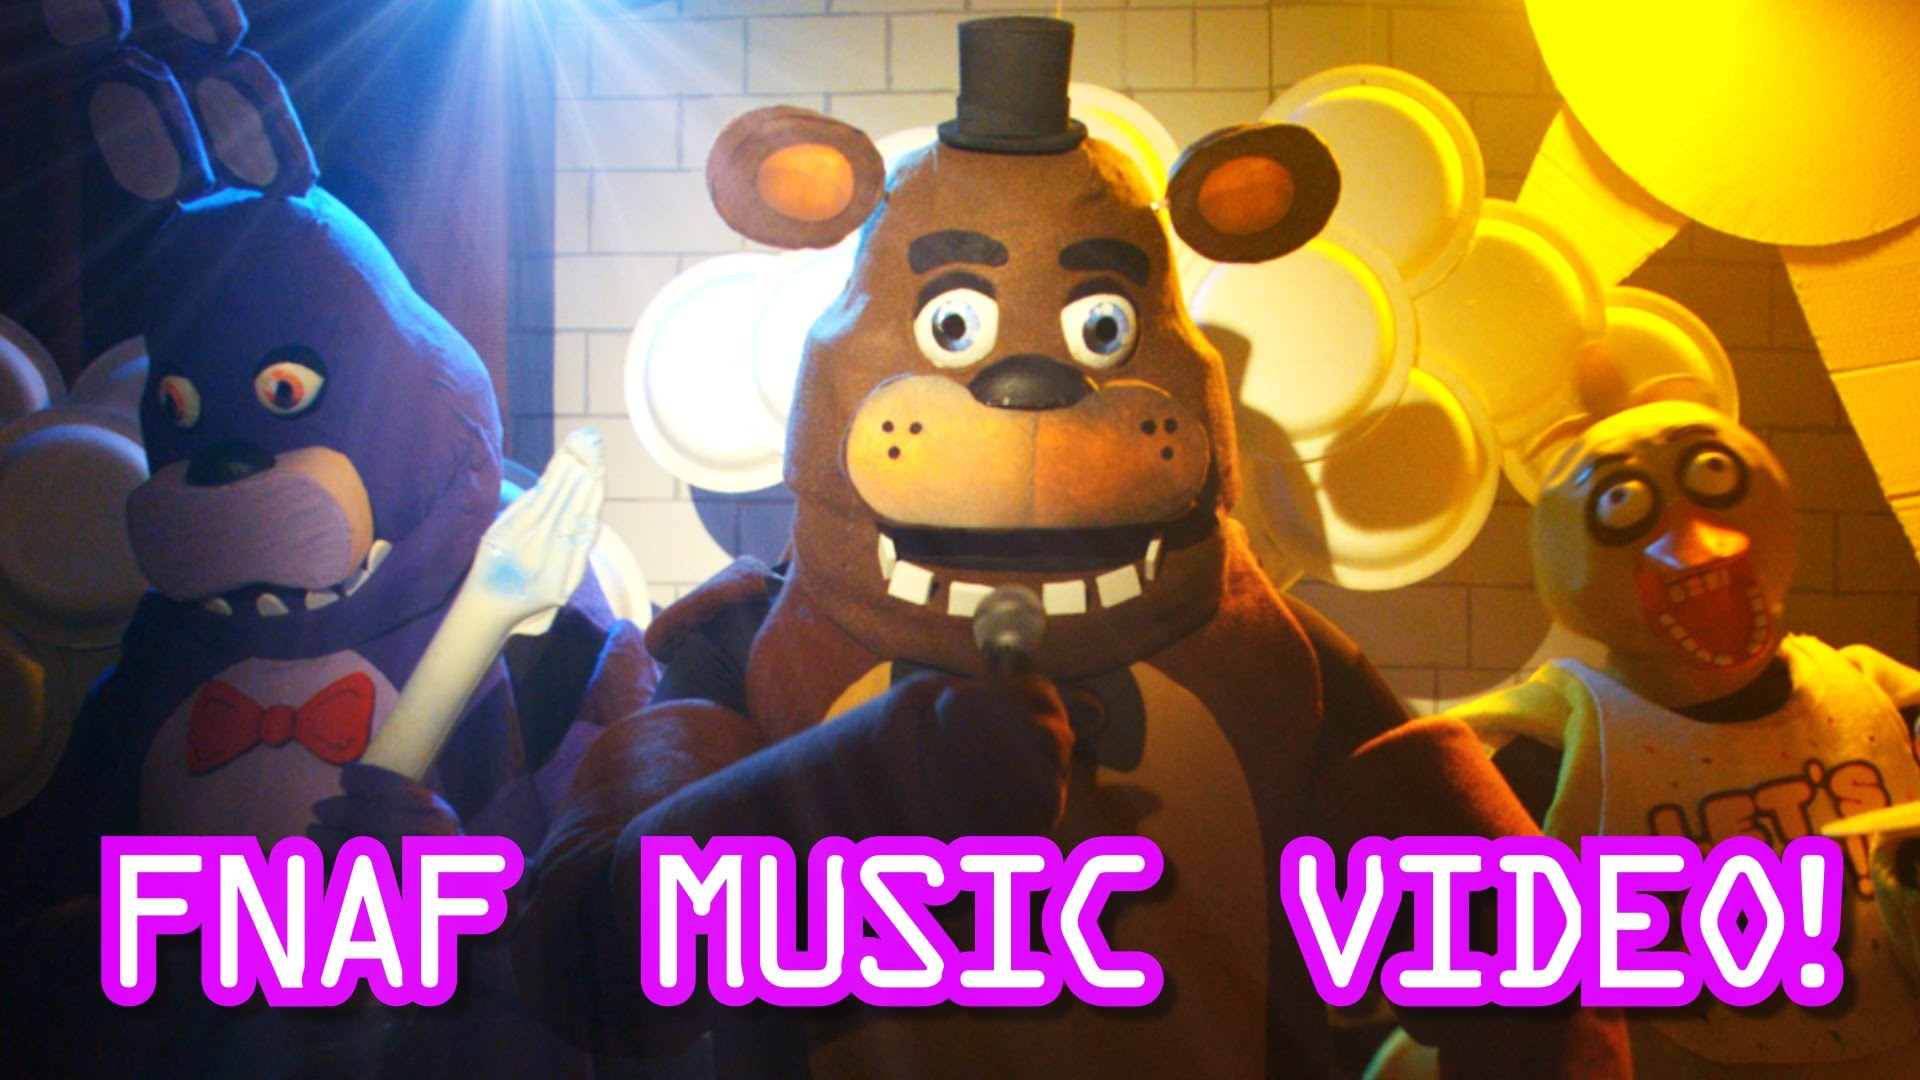 1920x1080 Five Nights At Freddys Live Action Music Video - FNAF Song for kids -  YouTube